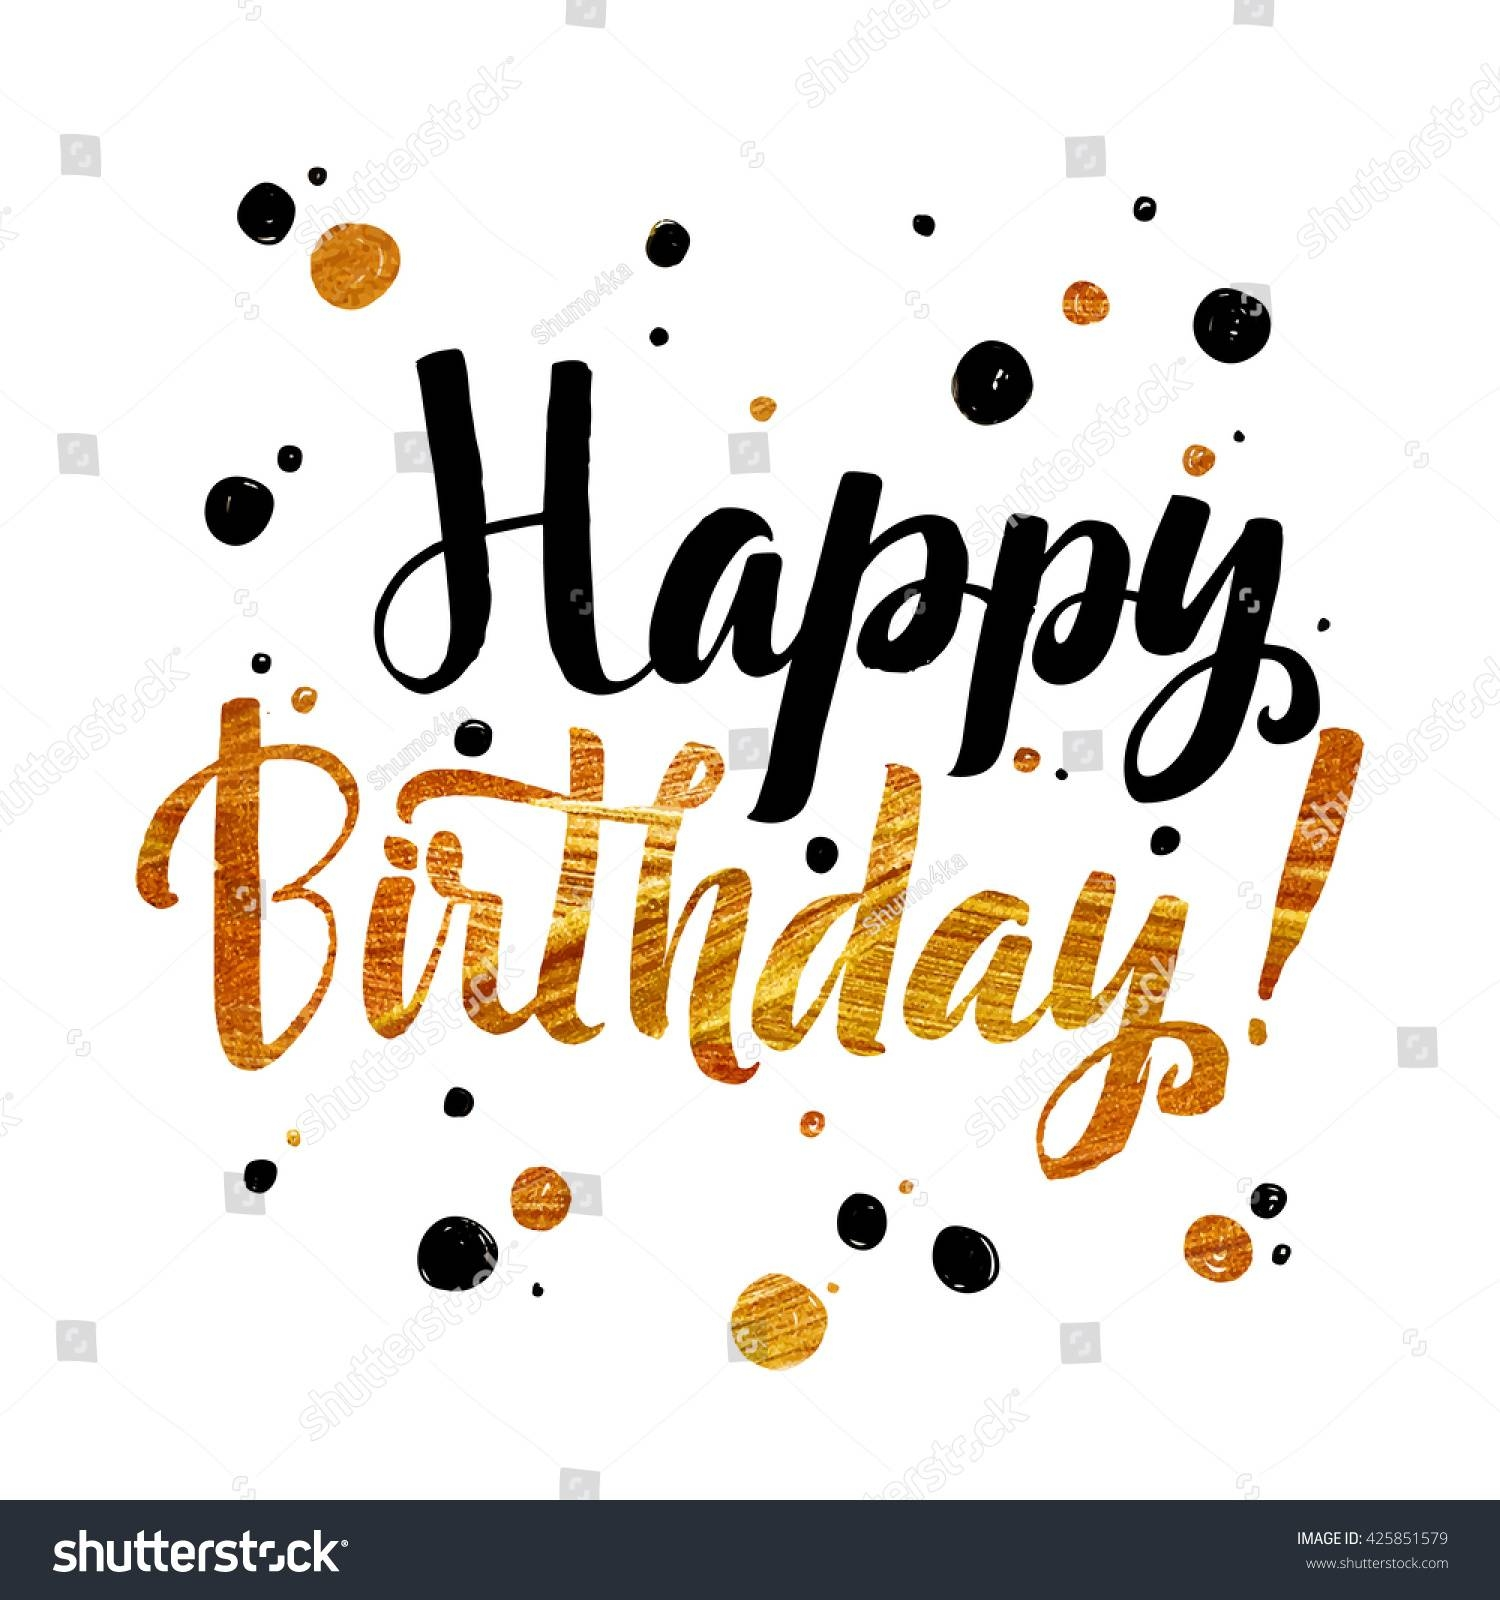 Happy Birthday Gold Foil Calligraphic Message Stock Vector Pertaining To Most Popular Happy Birthday Wall Art (View 8 of 20)